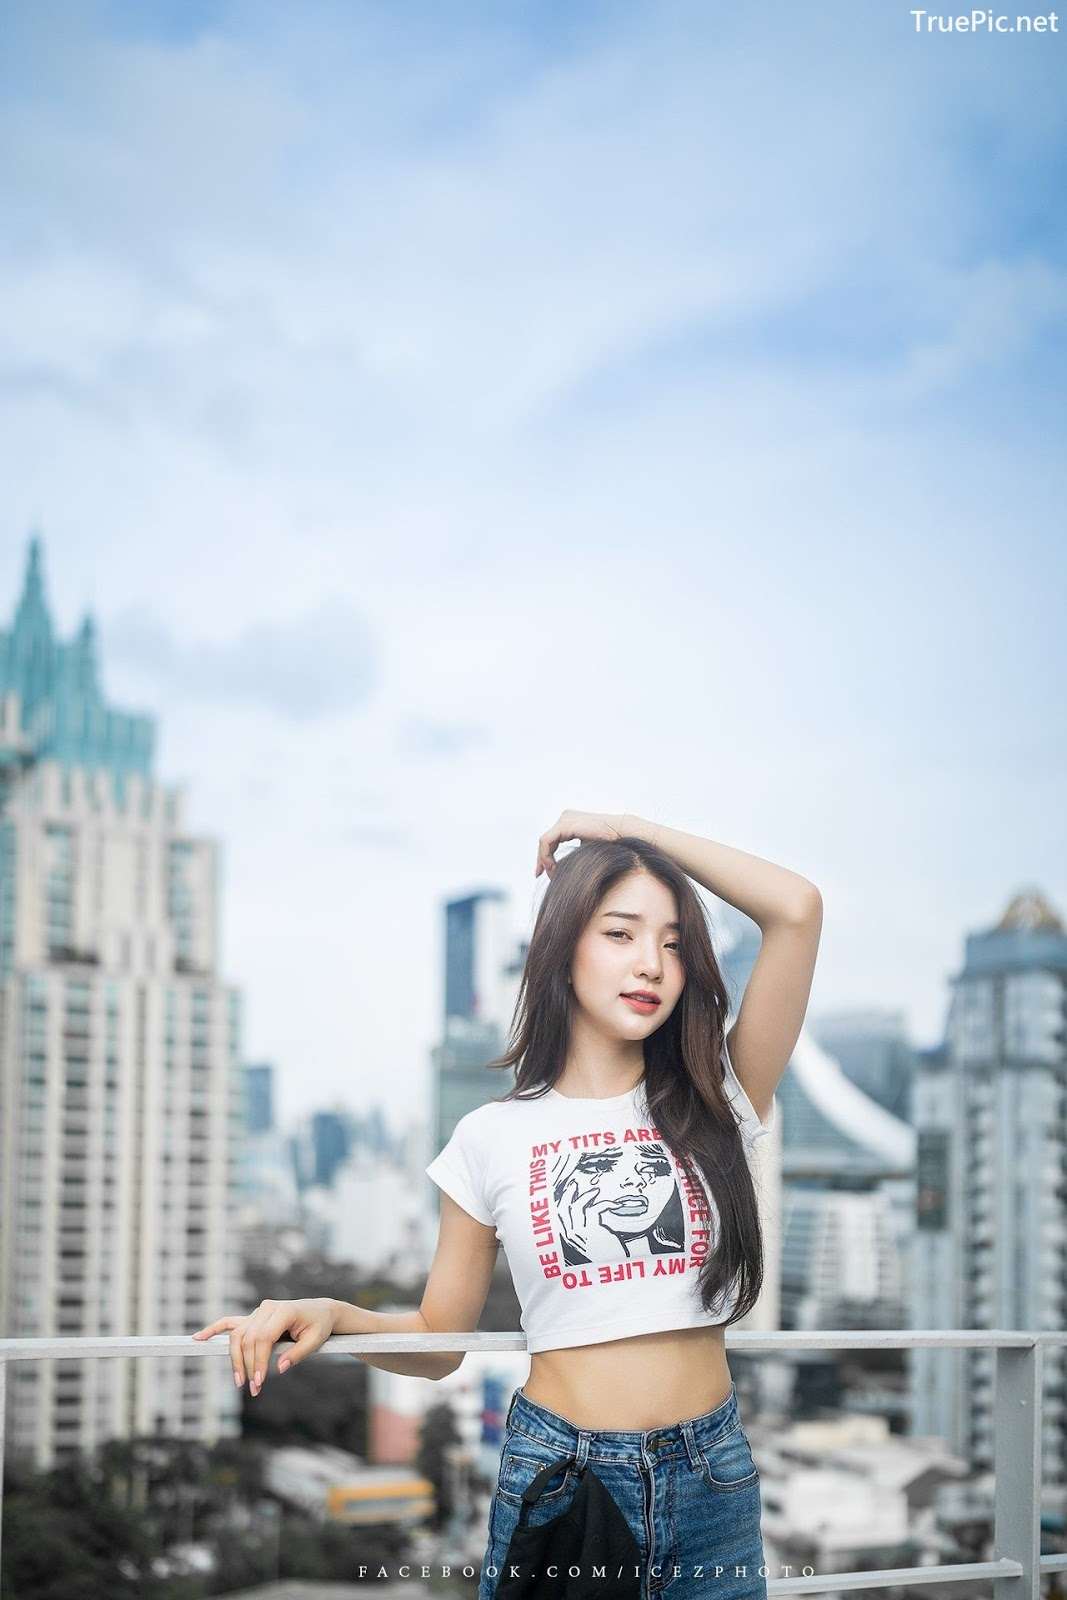 Image-Thailand-Pretty-Model-Anun-Sasinun-Outfit-City-Walking-Tour-TruePic.net- Picture-7